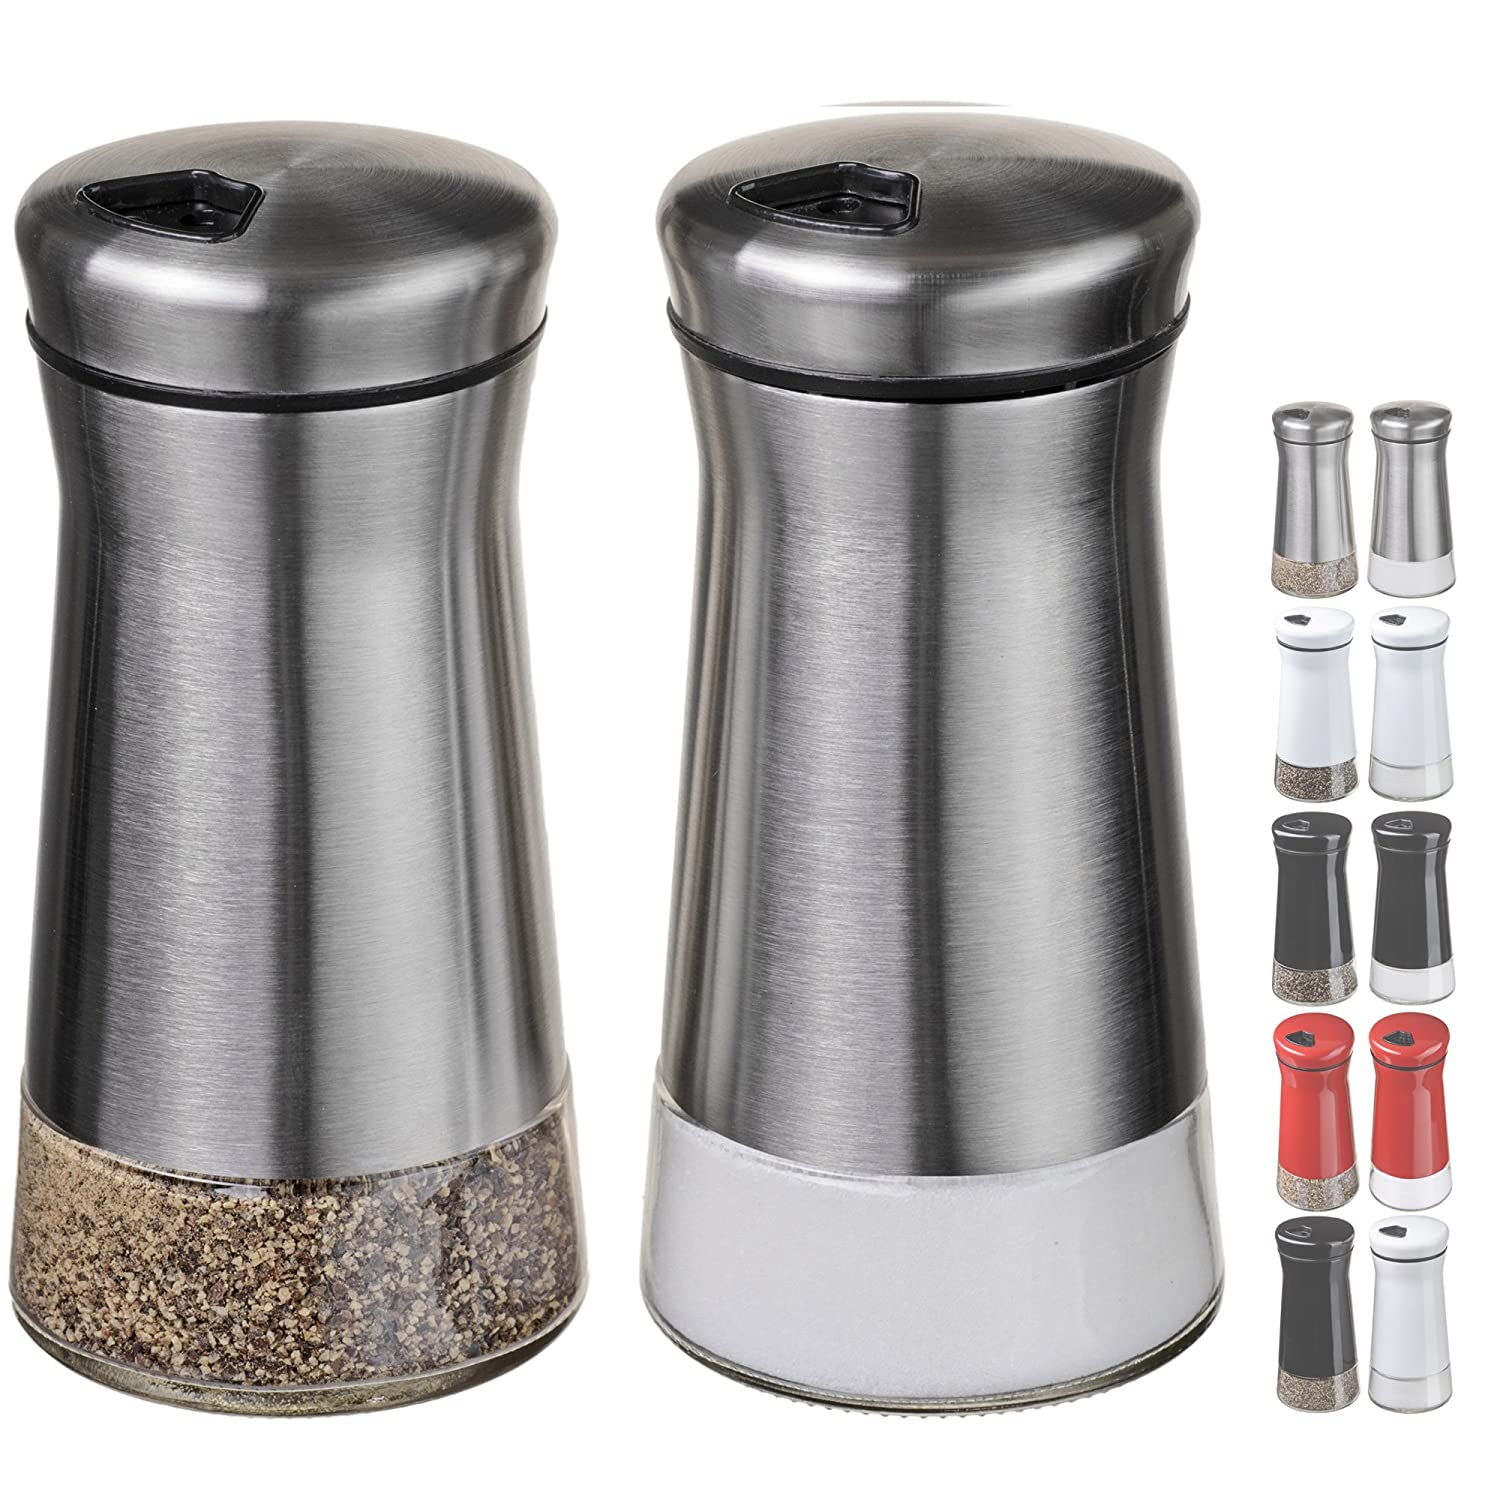 Amazon CHEFVANTAGE Salt and Pepper Shakers Set with Adjustable